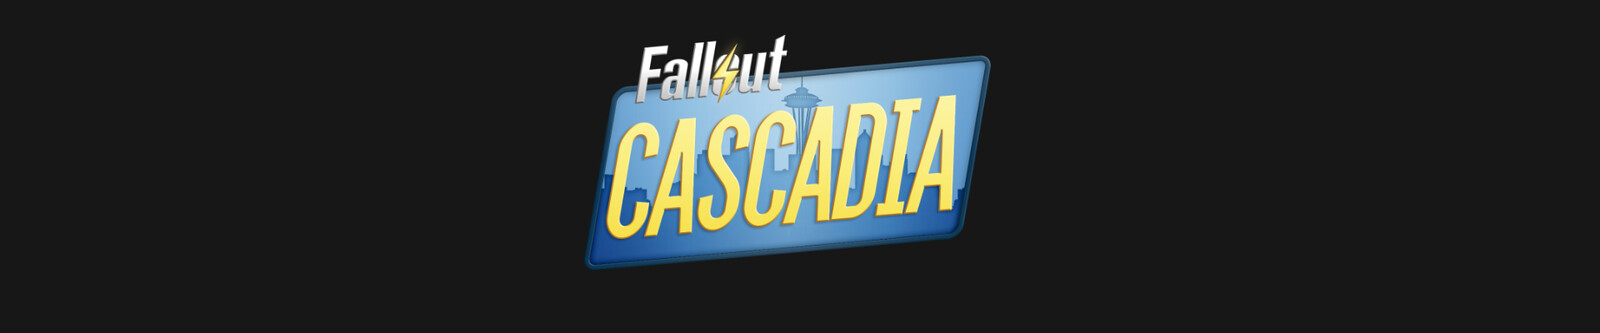 Go check out Fallout: Cascadia at: http://www.falloutcascadia.com/ and Cascadia Community Discord: https://discordapp.com/invite/FalloutCascadia